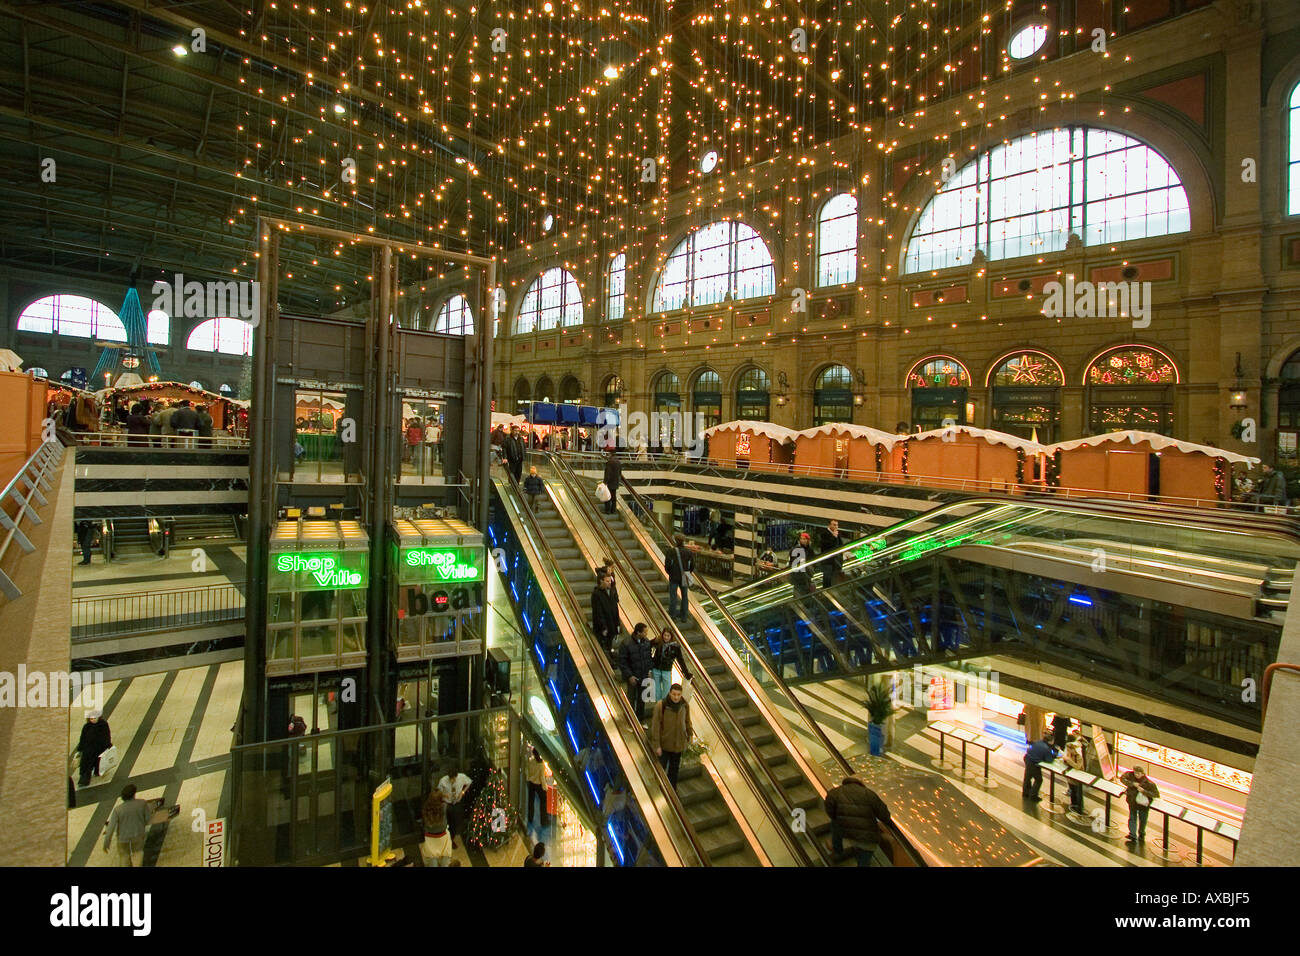 Switzerland Zurich main station christmas illumination - Stock Image